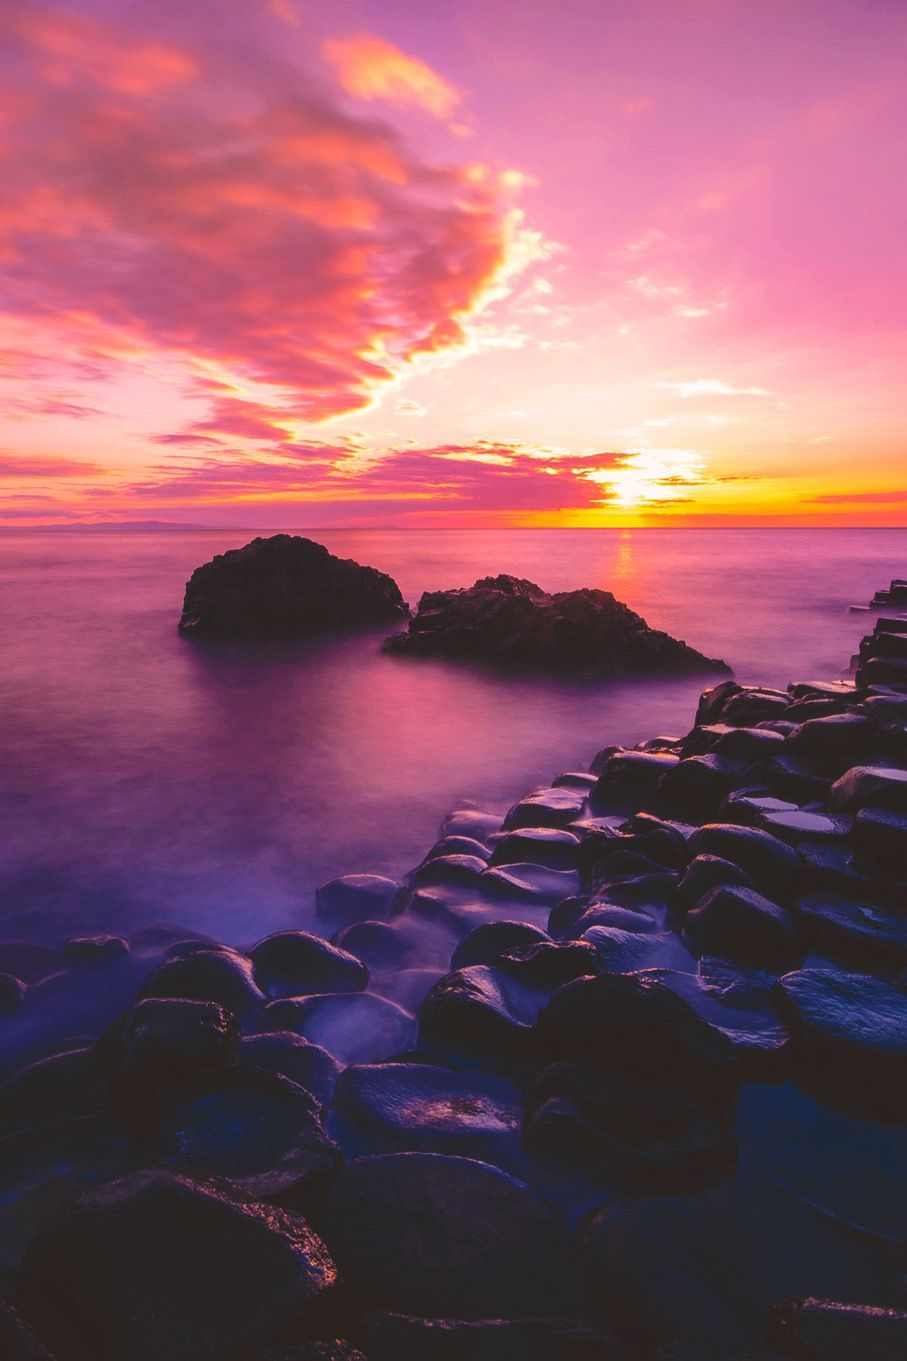 Sea Ocean Sunset Beautiful Landscape Photography Landscape Photography Beautiful Landscapes